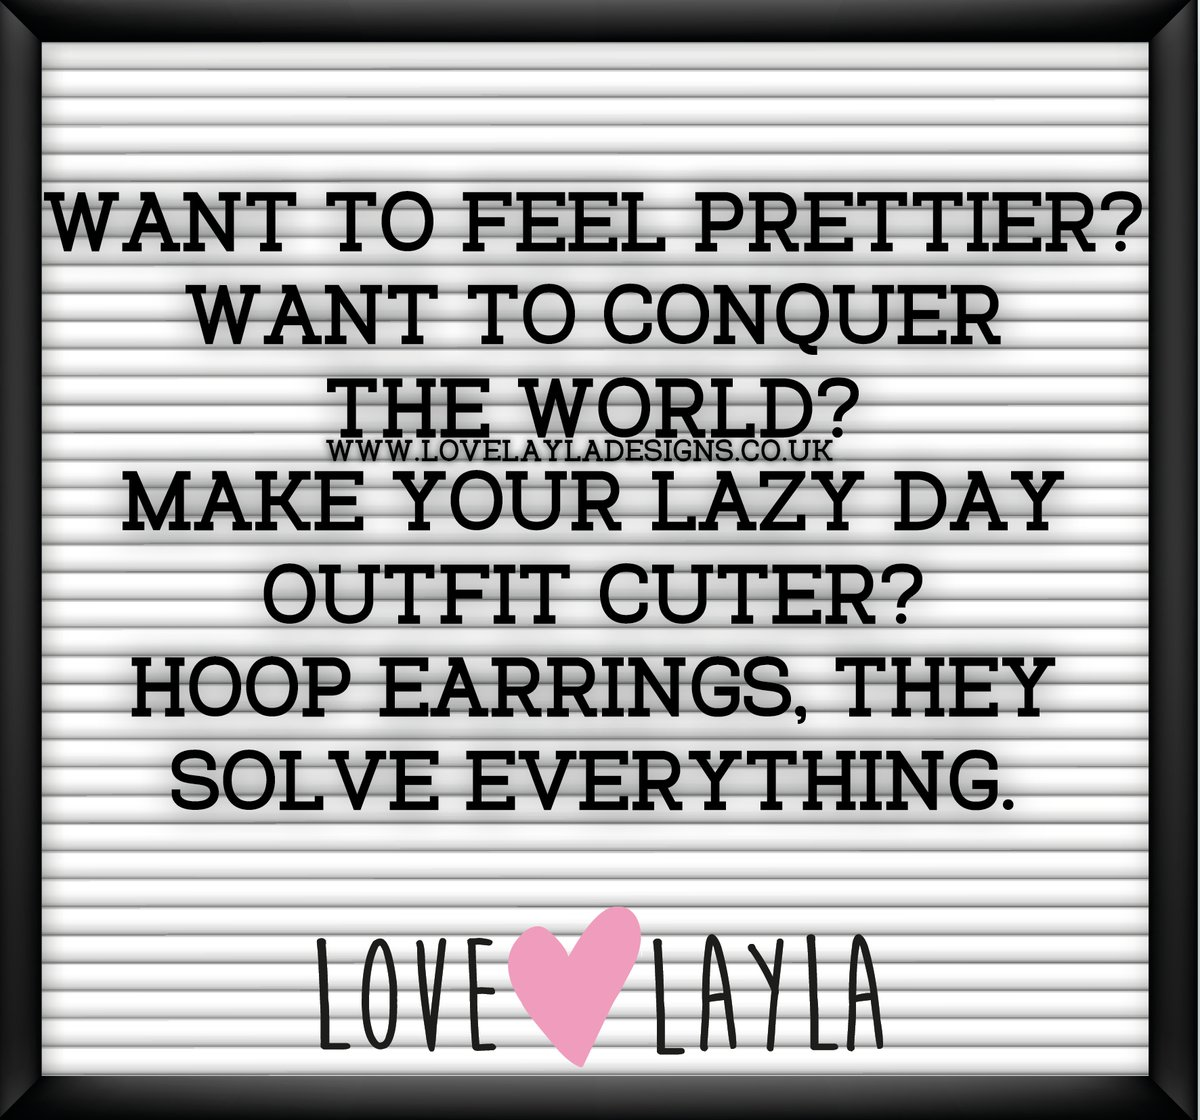 HOOPS!  #funnymemesdaily #funnycards #funnyquote #inapropriatecards #funnyquotesdaily #lovelaylapic.twitter.com/5L2clKCSZJ